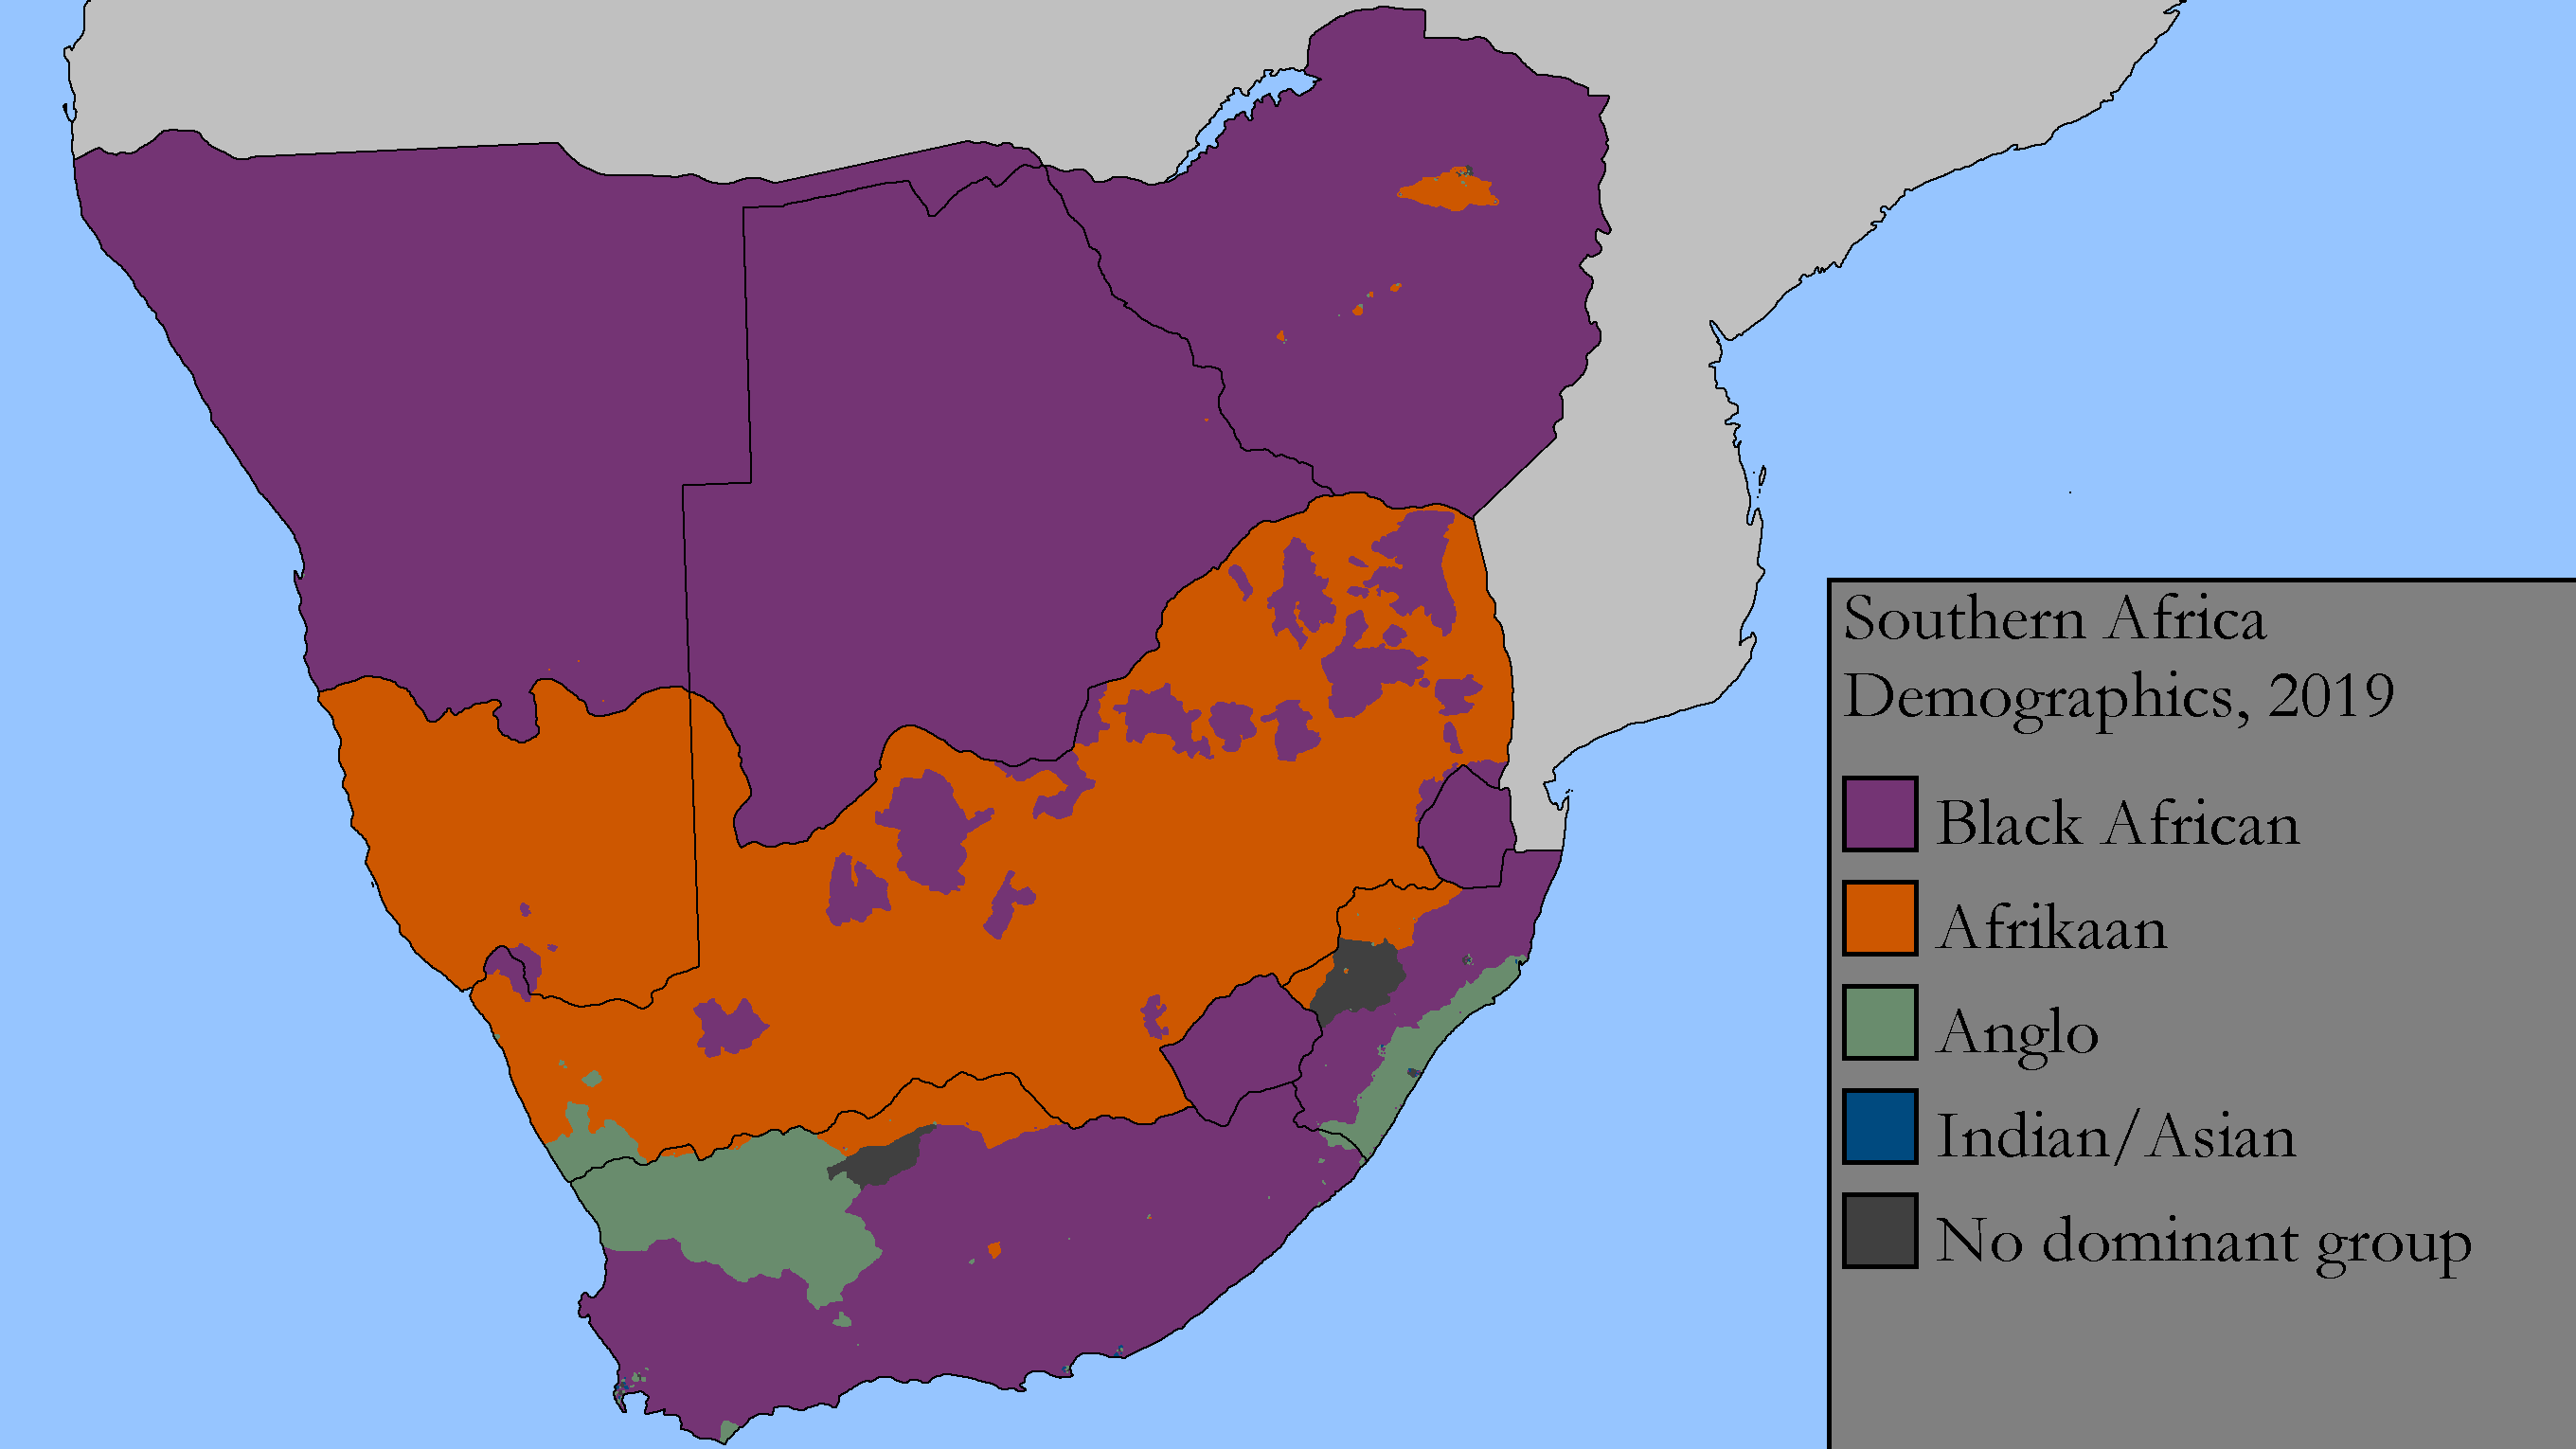 Southern Africa Demographics.png